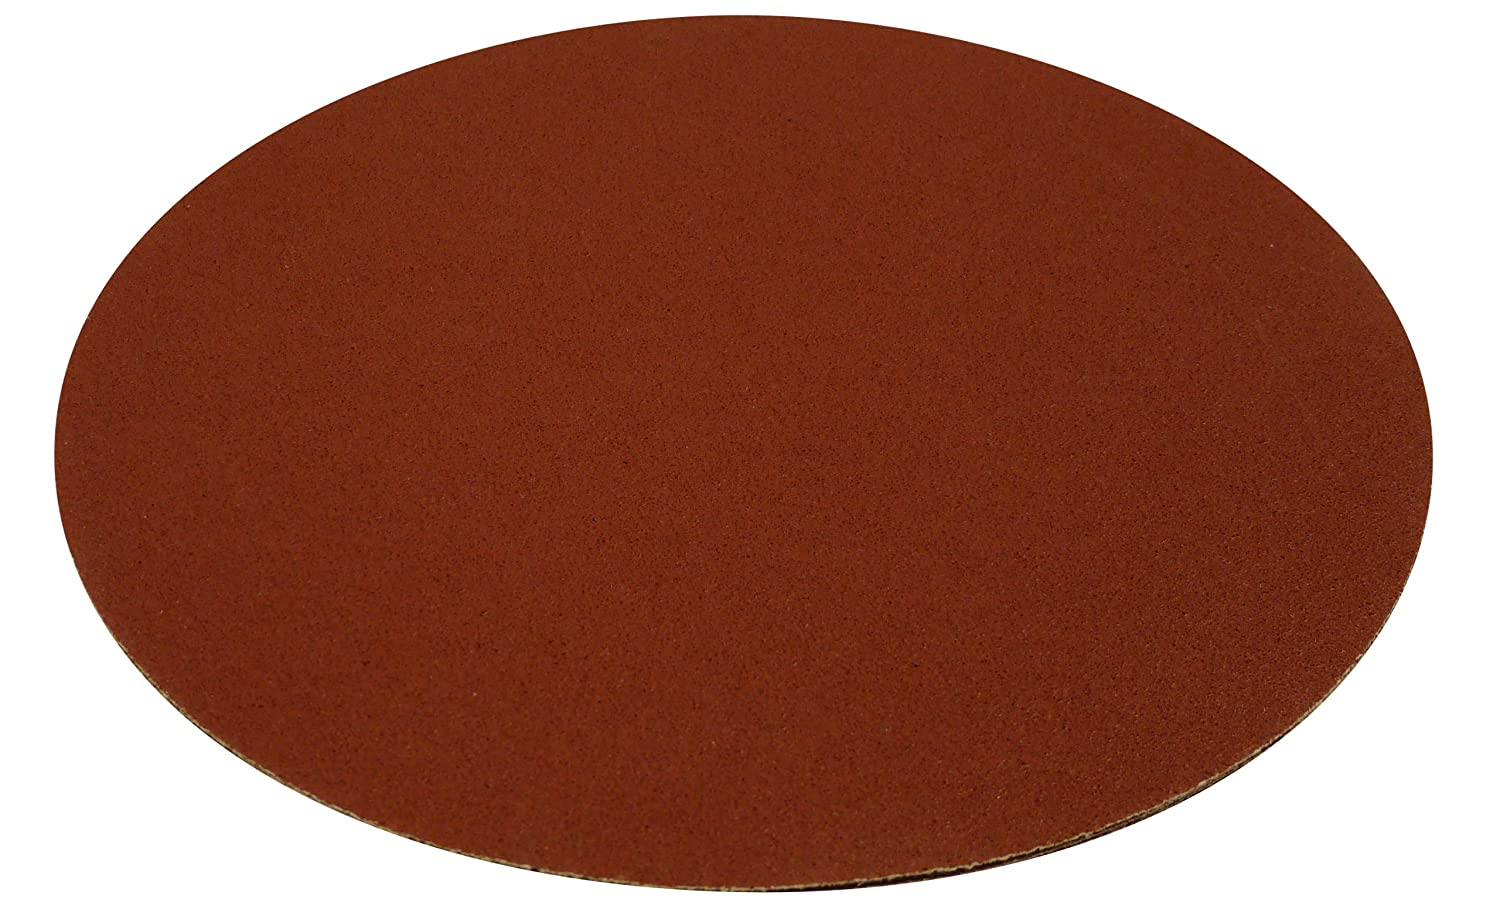 Fartools 115885 Abrasive Sanding Discs Grit Size 80 / for Sanders with Reference 115159 and 115162 Diameter 180 mm Set of 6